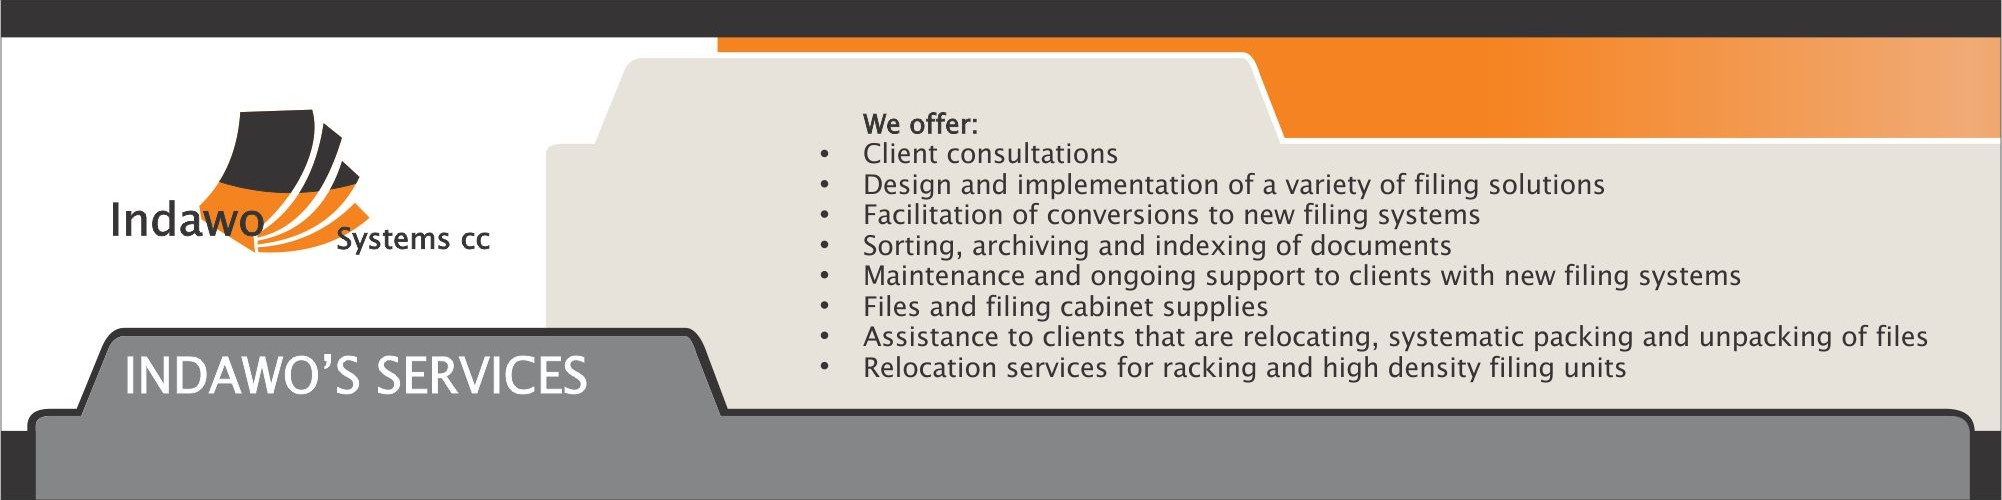 Indawo's Services